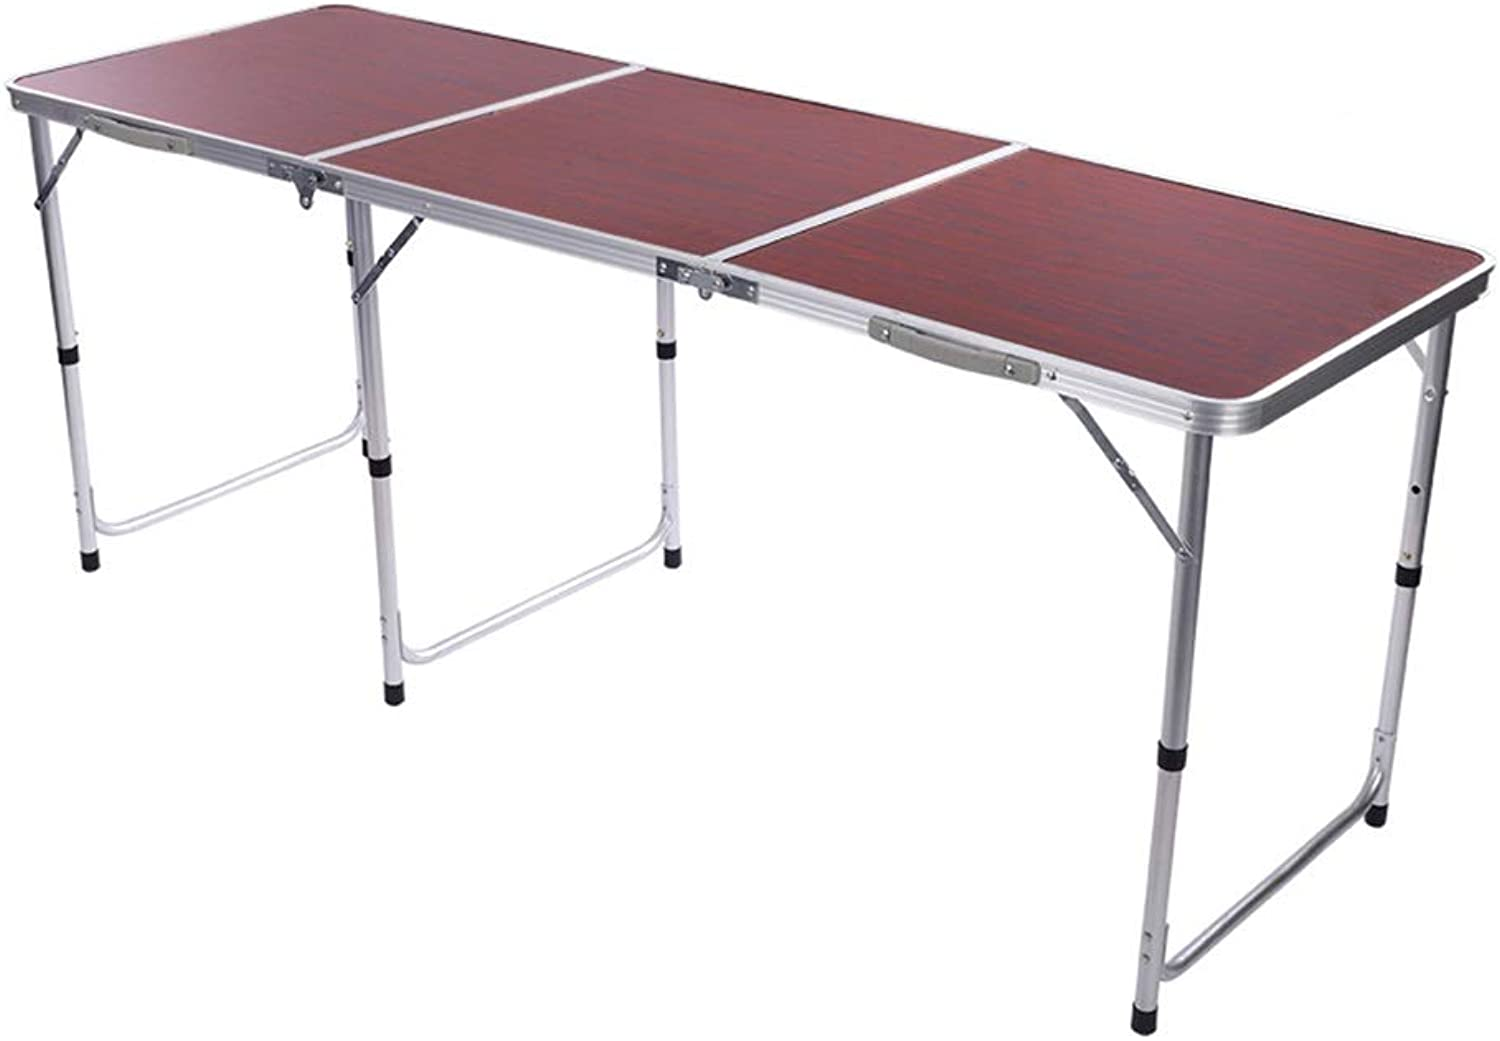 Casual Folding Table, Aluminum Alloy Can Be Lifted and Lowered, Suitable for Camping Picnics (3 colors) (color   Jujube Red)